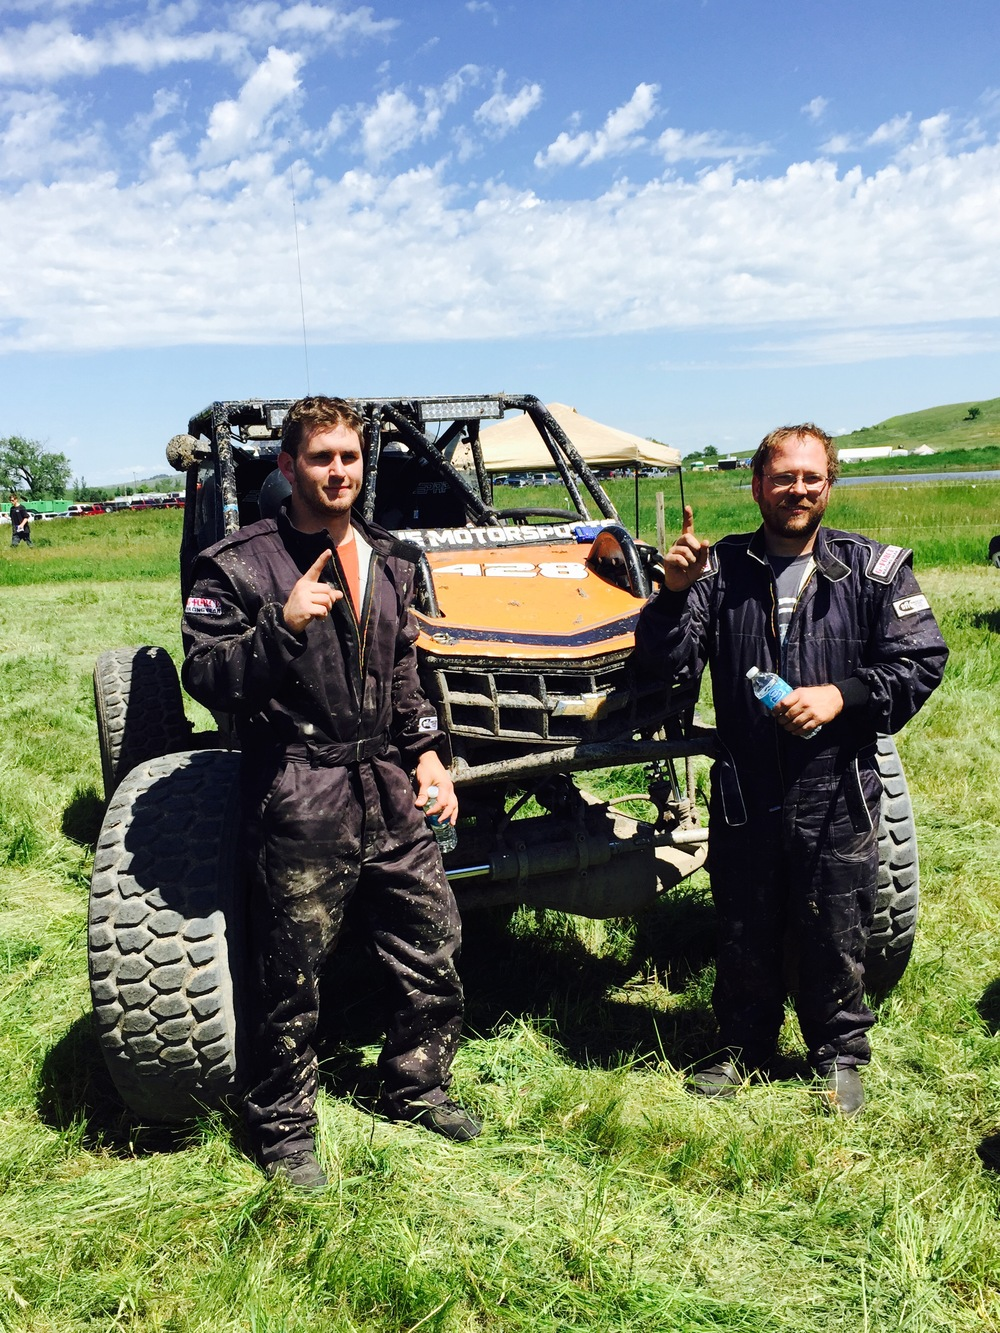 Nick Birdsall and Jeremy Schneider with the High Torque 4x4 car.